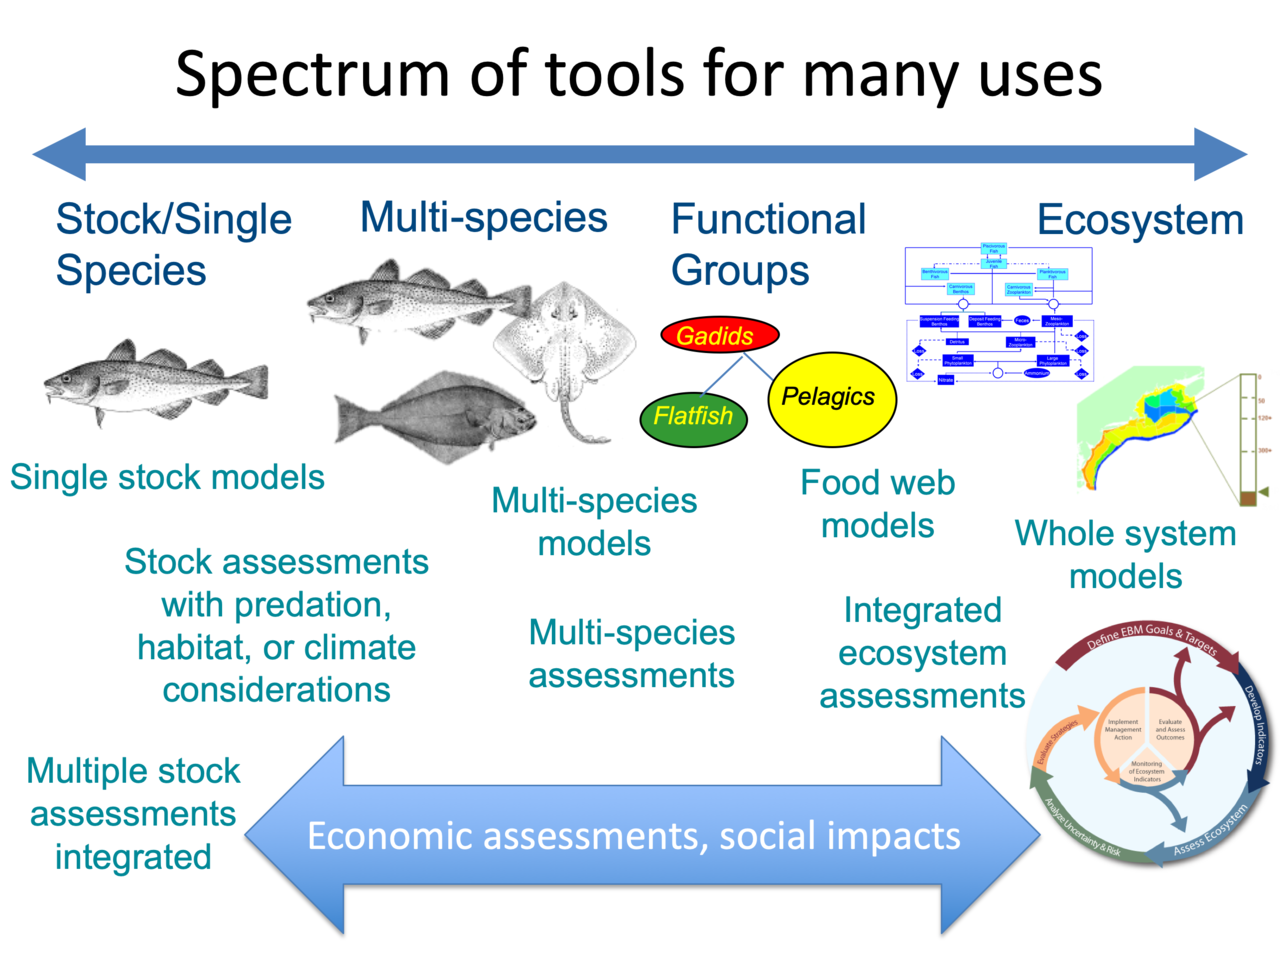 Figure shows spectrum of models increasing in complexity from single species through multispecies, food web, and end to end. Uses for each type of model from generating annual species harvest advice to integrated ecosystem assessment are aligned with model types. Social and economic analyses can be incorporated into each analysis.